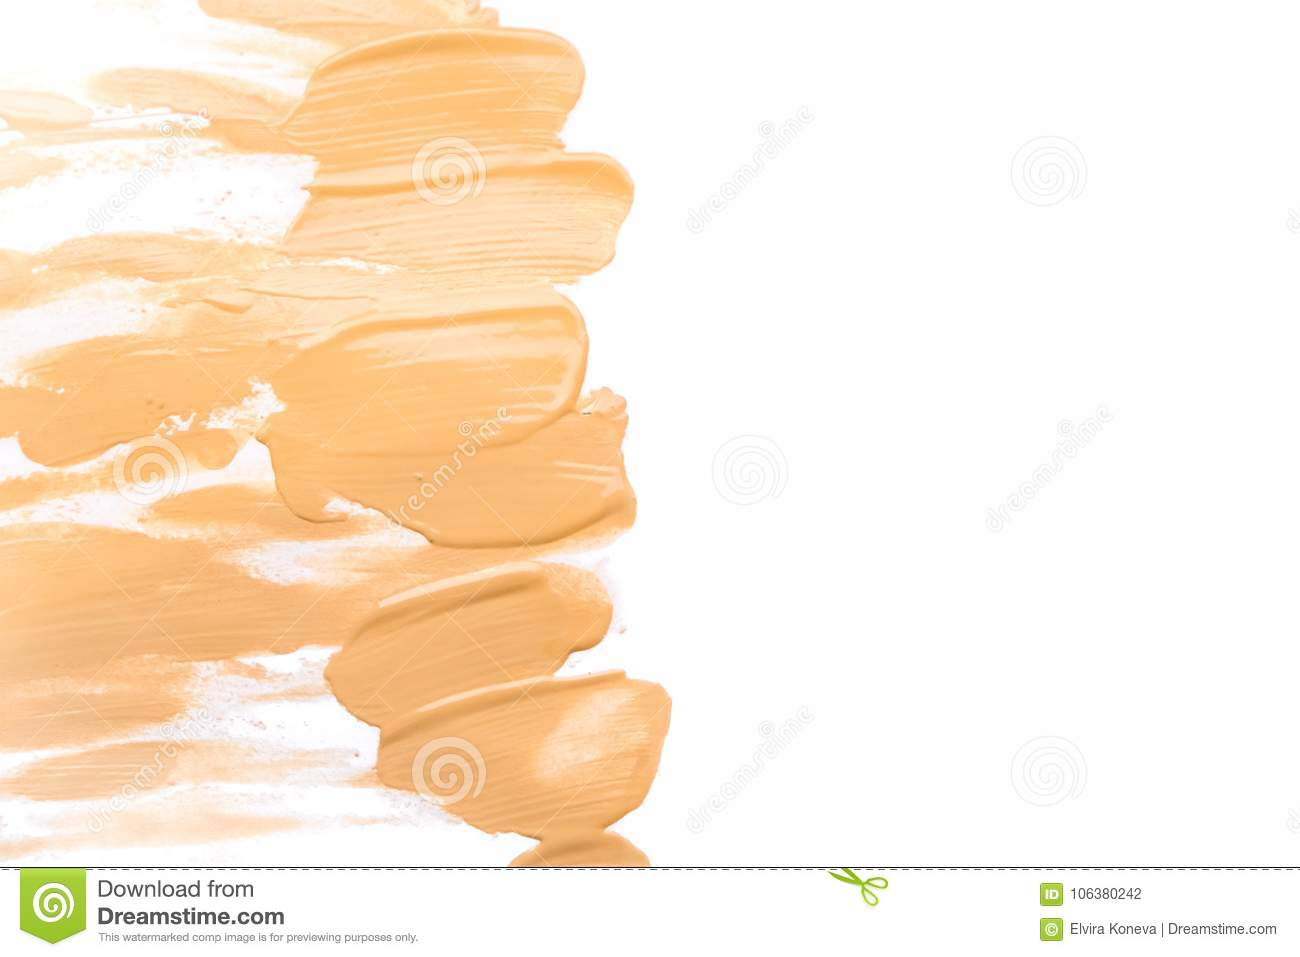 Makeup Foundation Blur Cream Isolated Background Top View Collage Corrective Base Make Up Tonal